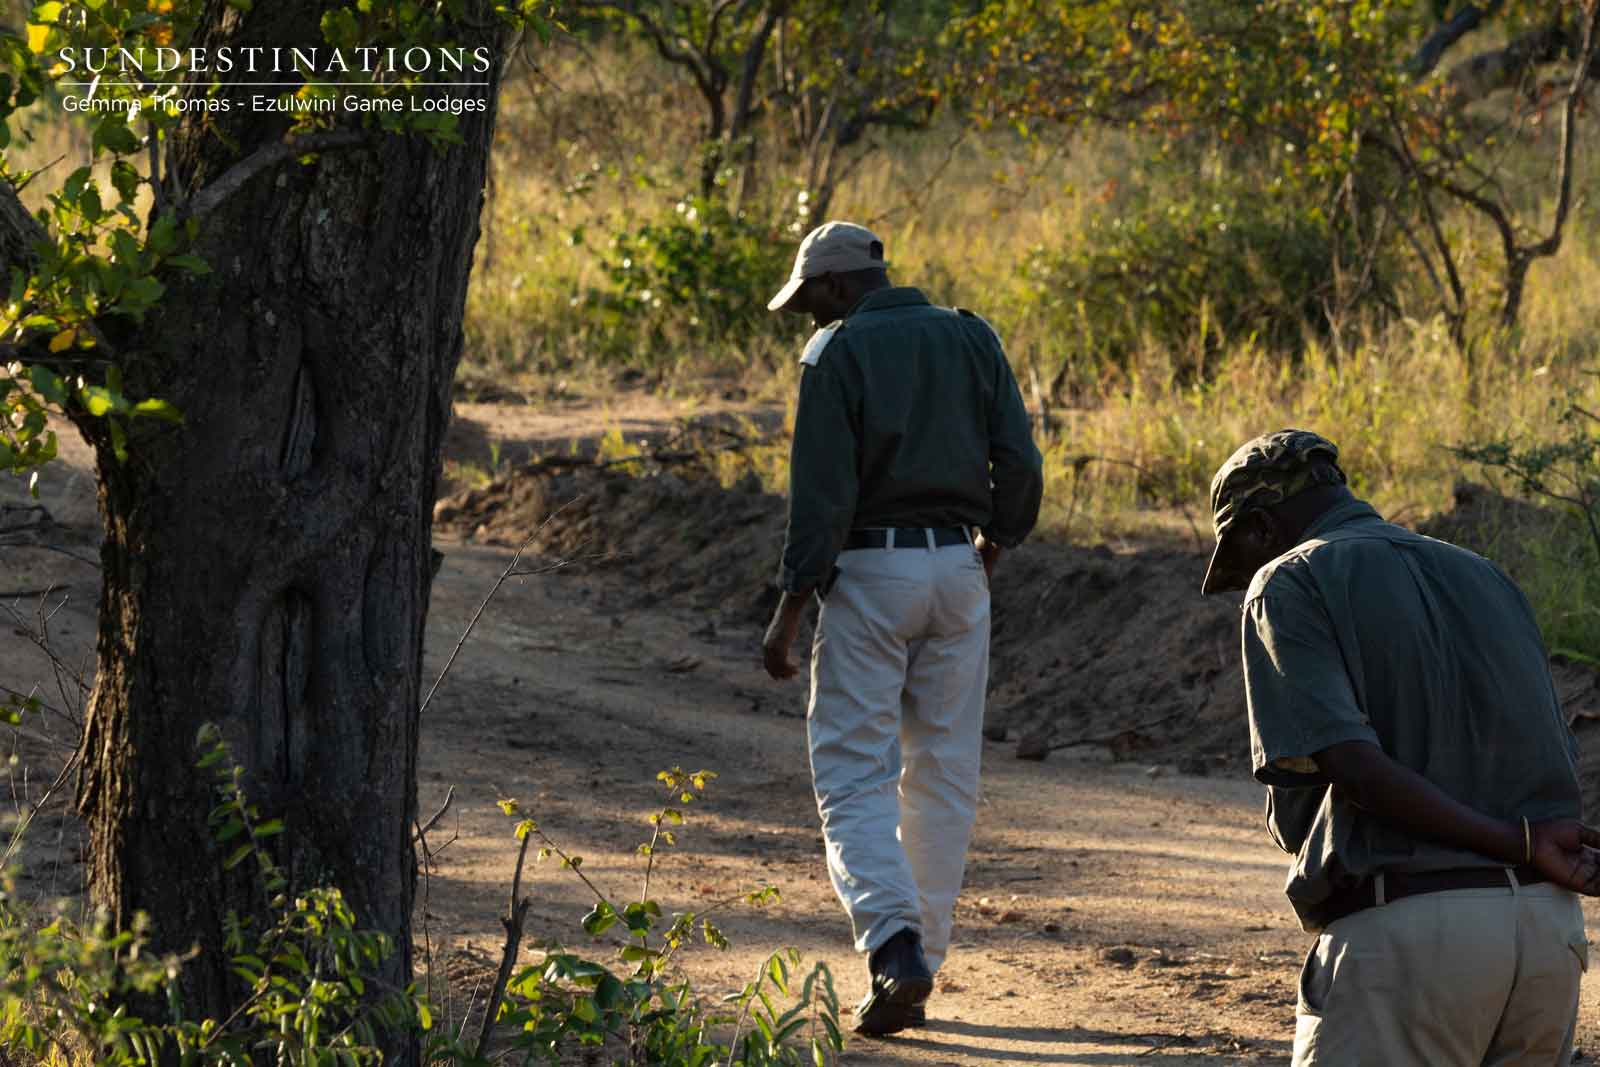 Guides and Trackers at Ezulwini Game Lodges